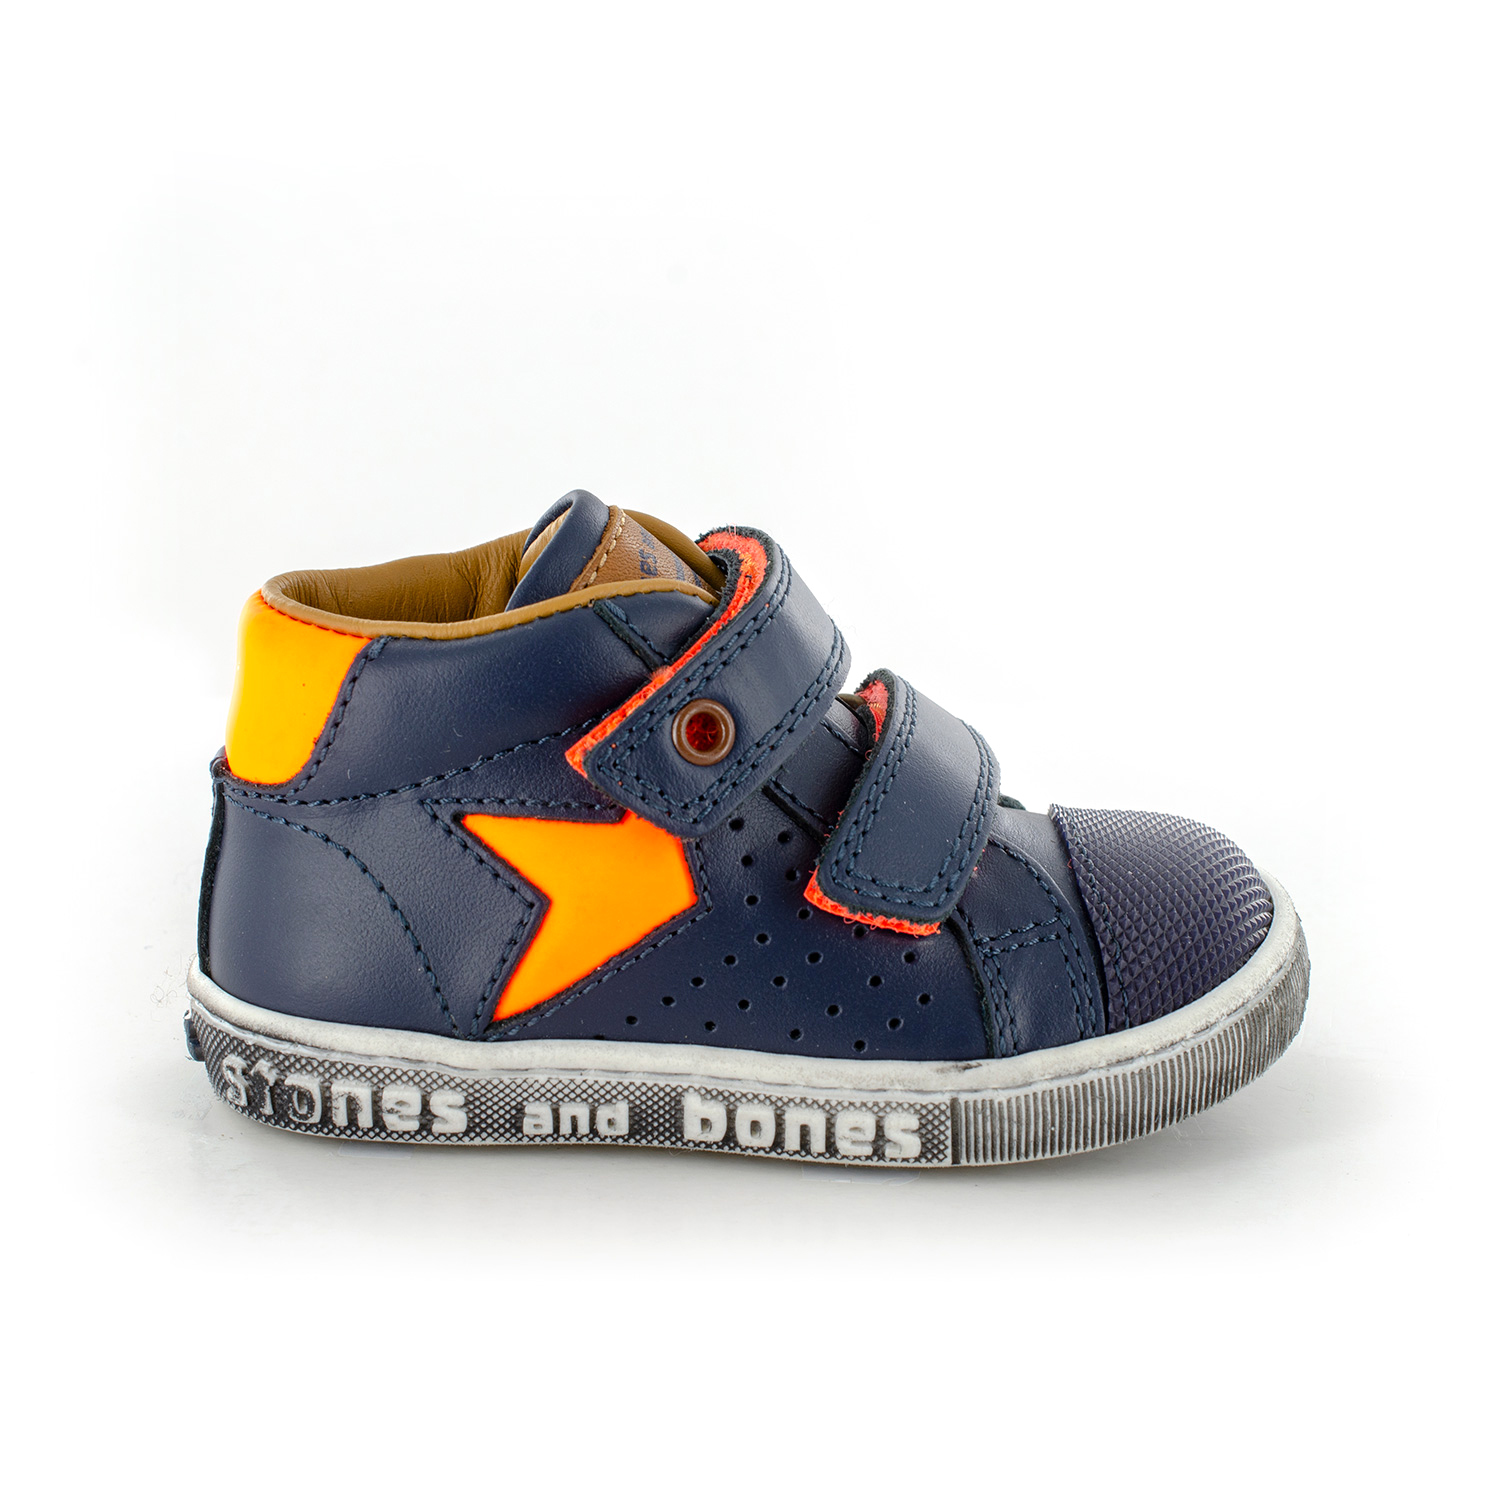 MENO calf navy + f.orange